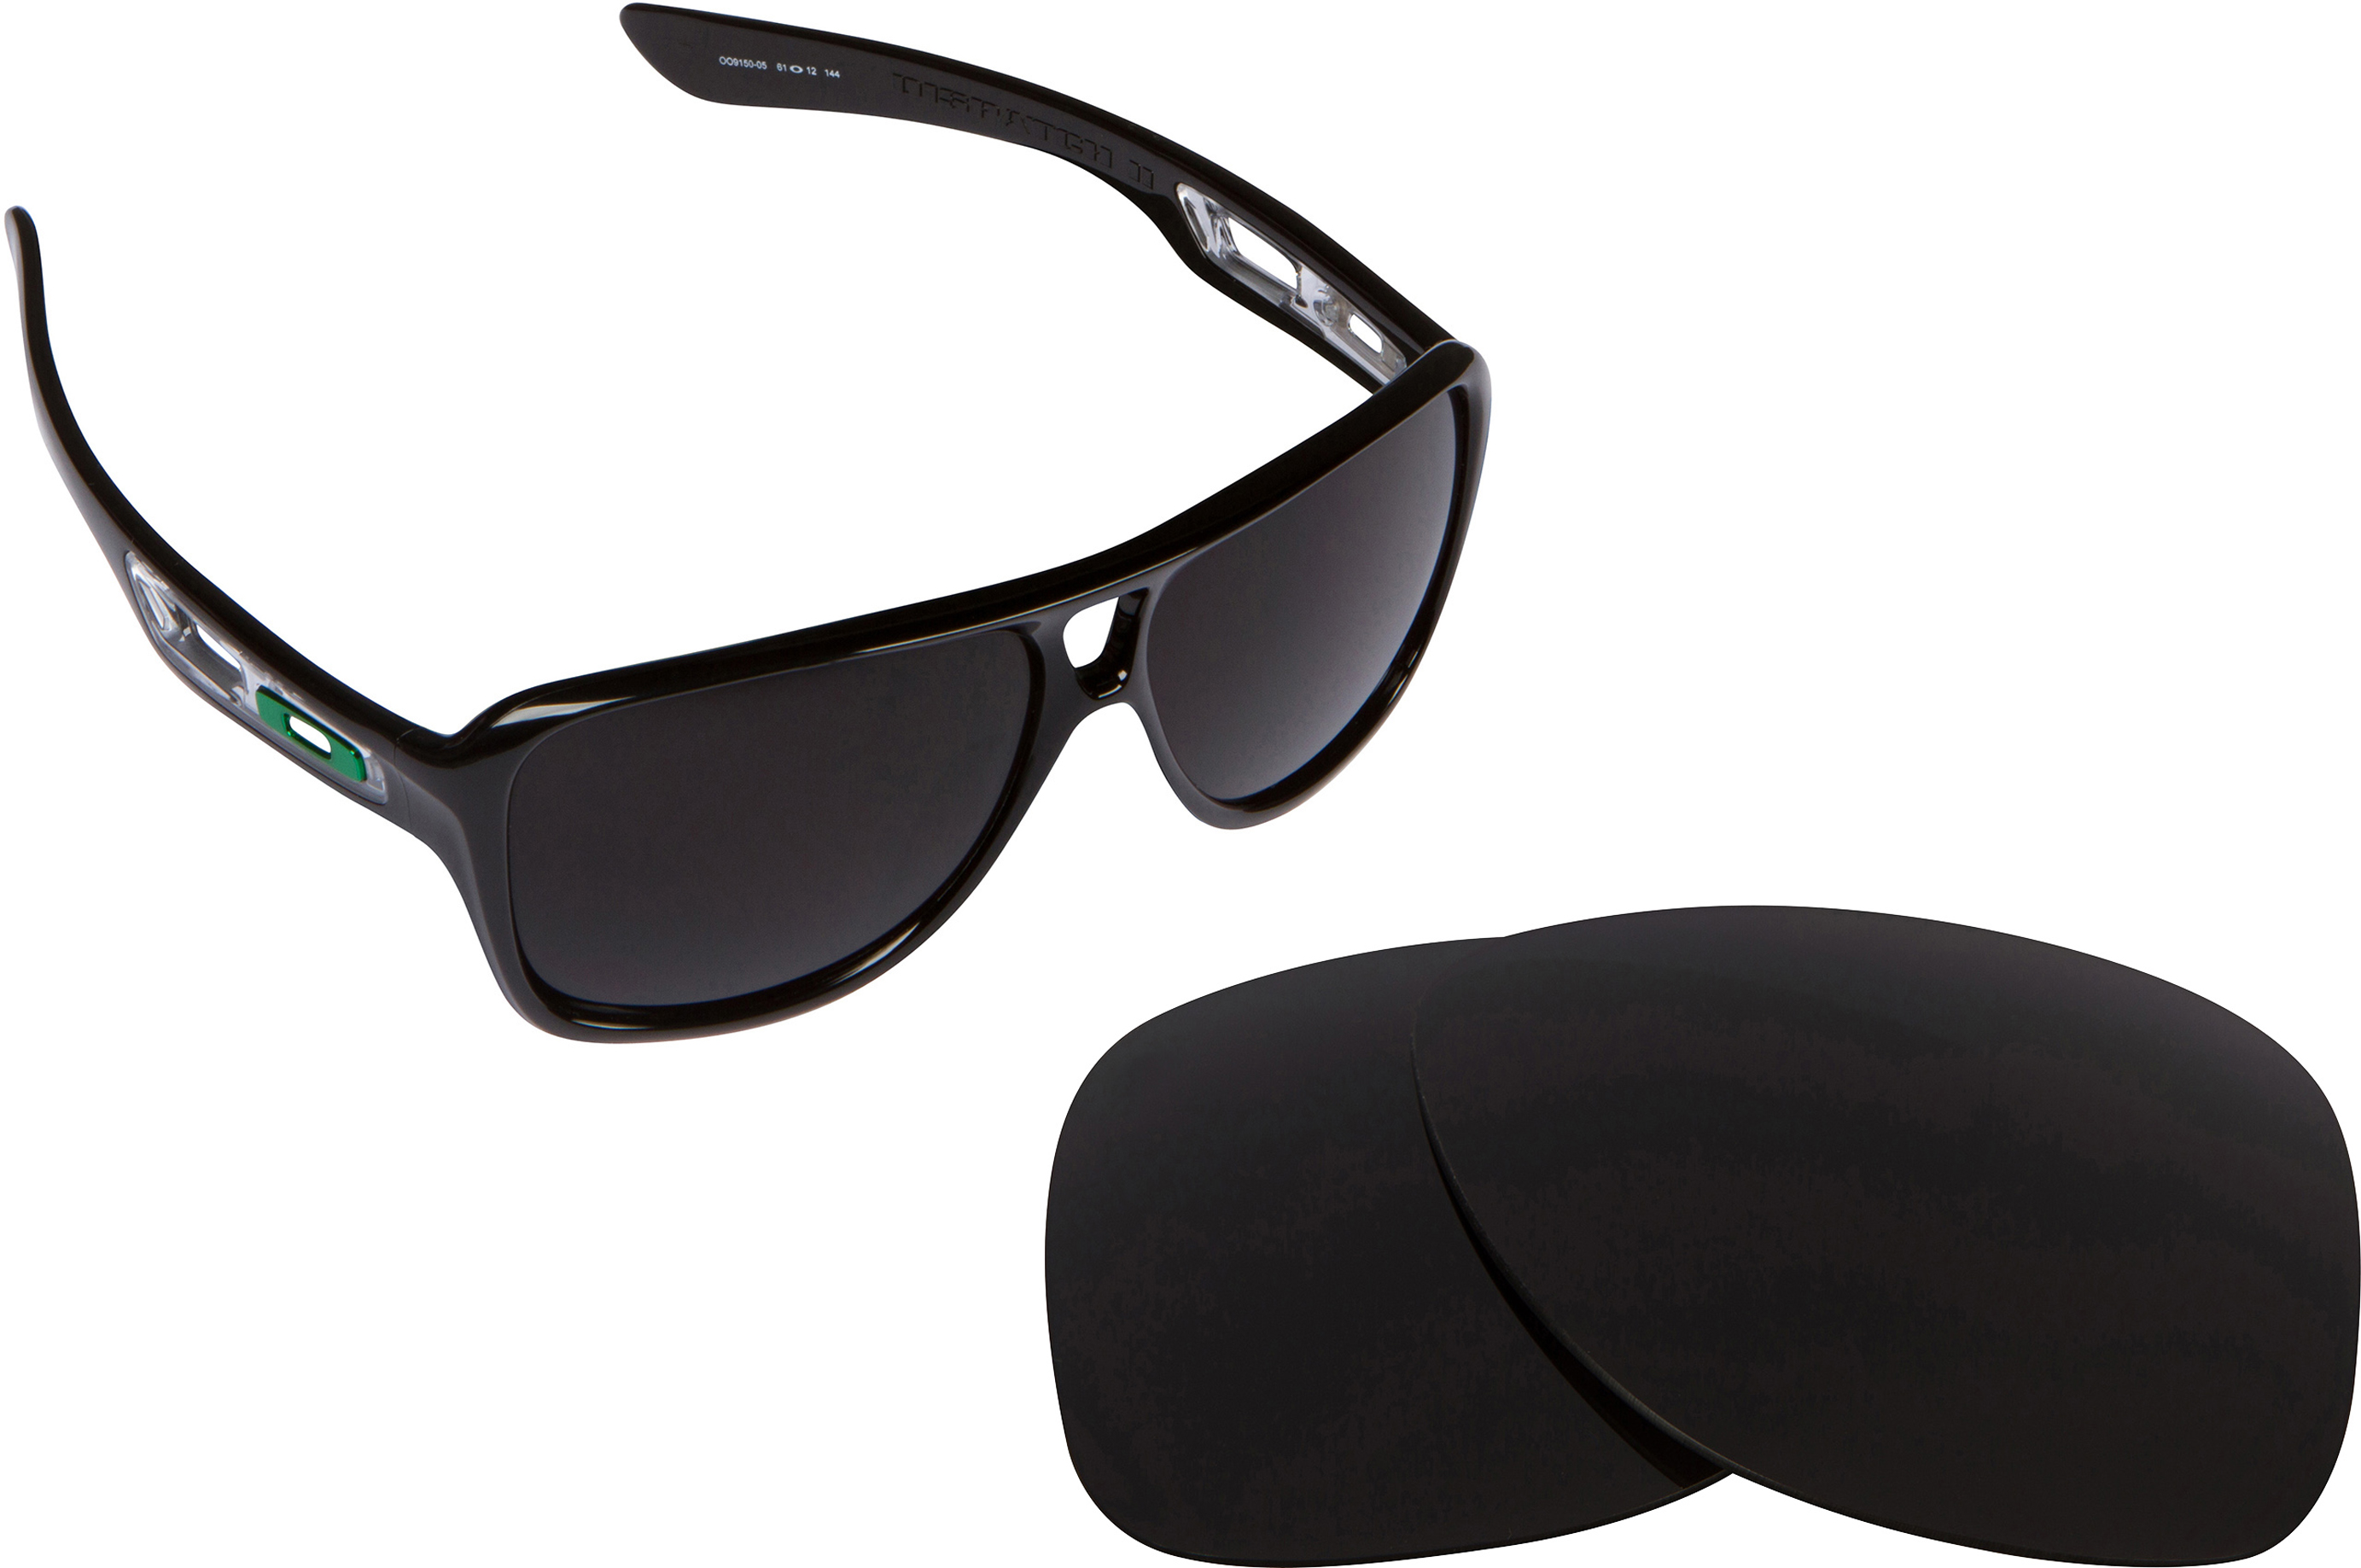 oakley half jacket 2.0 xl polarized replacement lenses  replacement